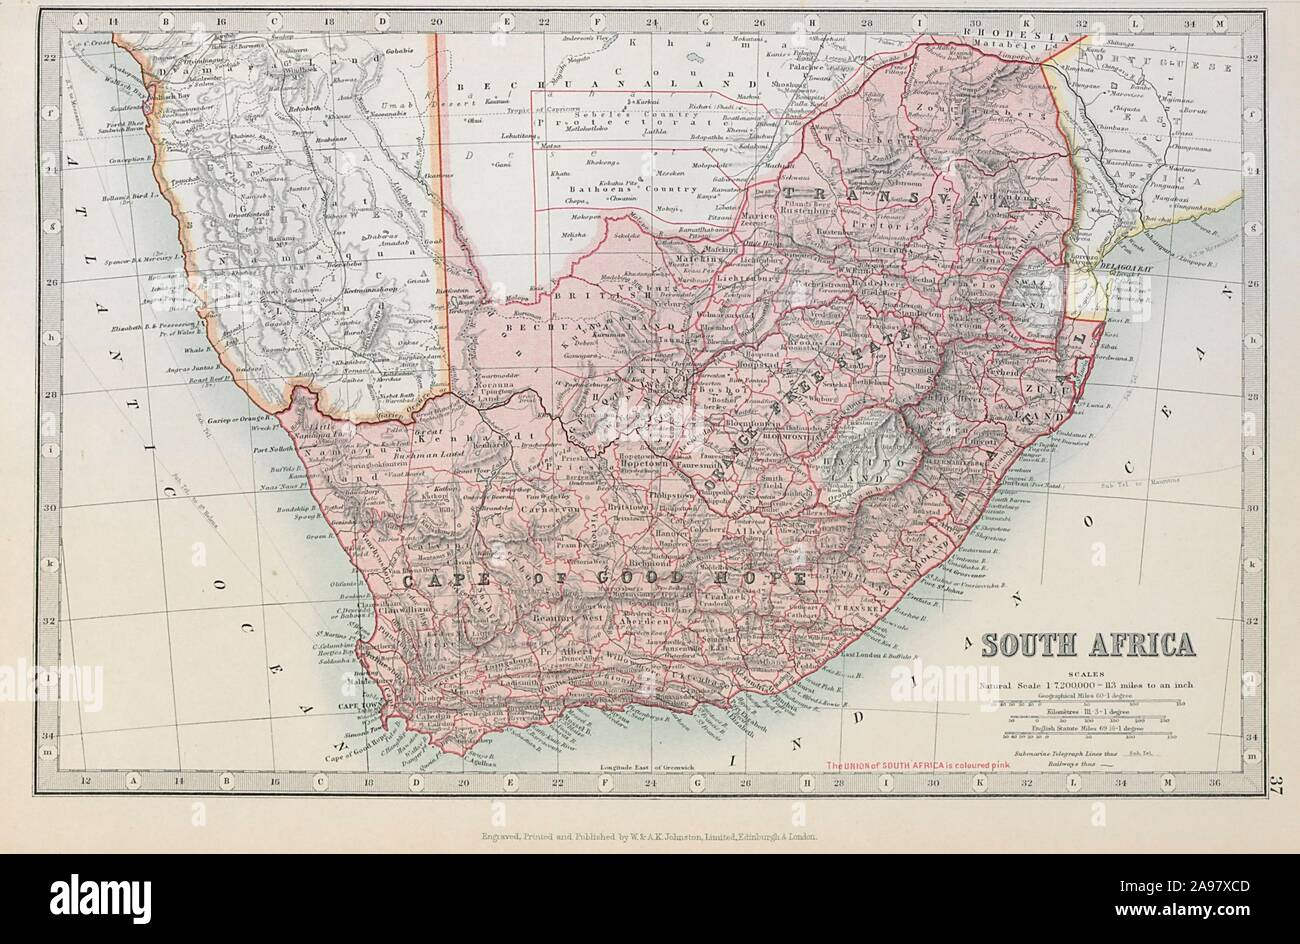 SOUTH AFRICA. Cape of Good Hope Transvaal Orange Free State ...